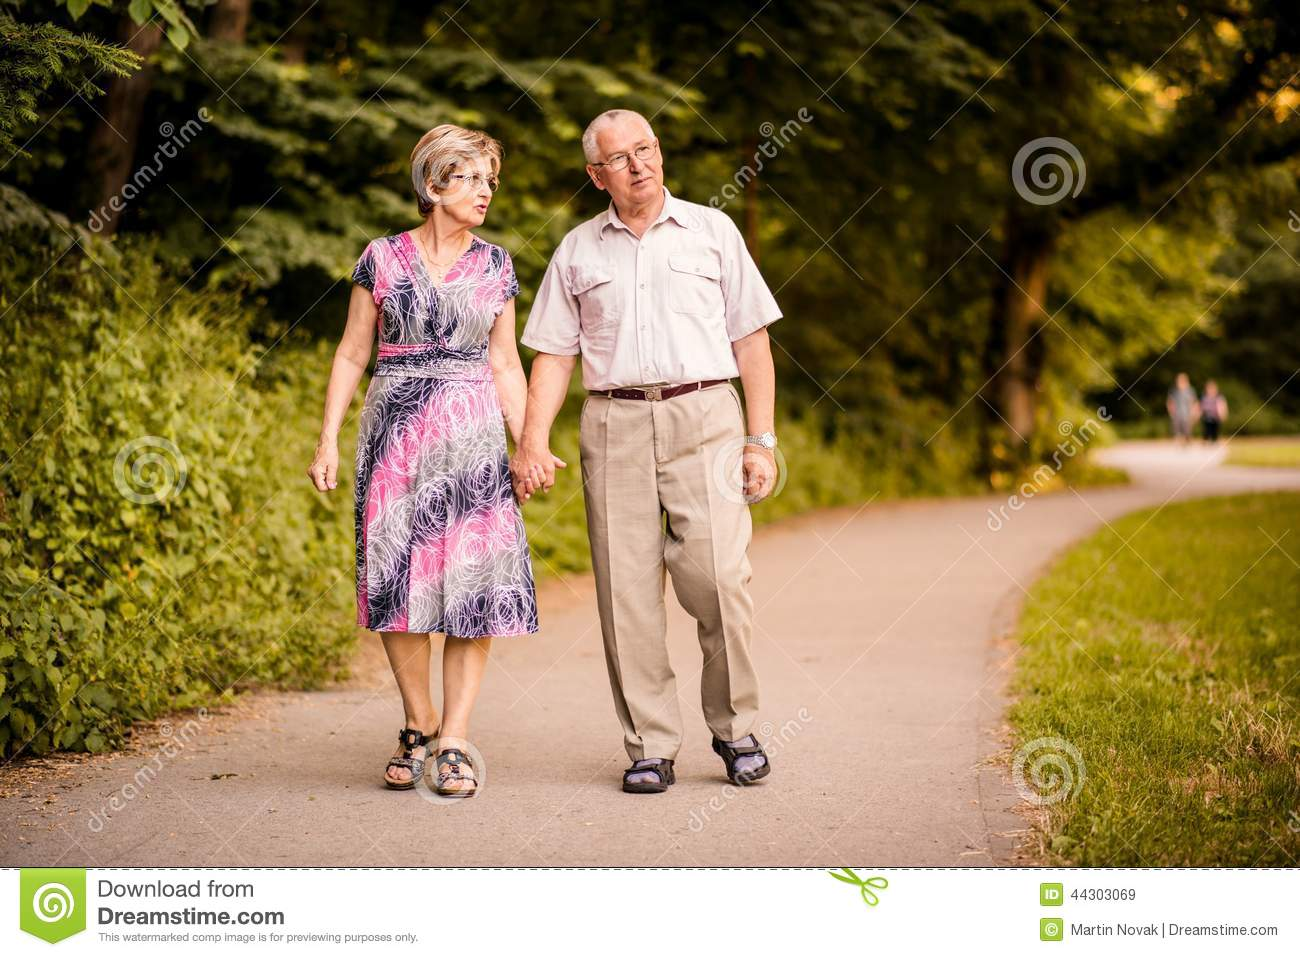 palos park senior dating site Orland township senior dating game        requirements for membership in  southwest suburban single seniors  confirm you have read our waiver of  liability terms found under the what we are about section of our meetup page.